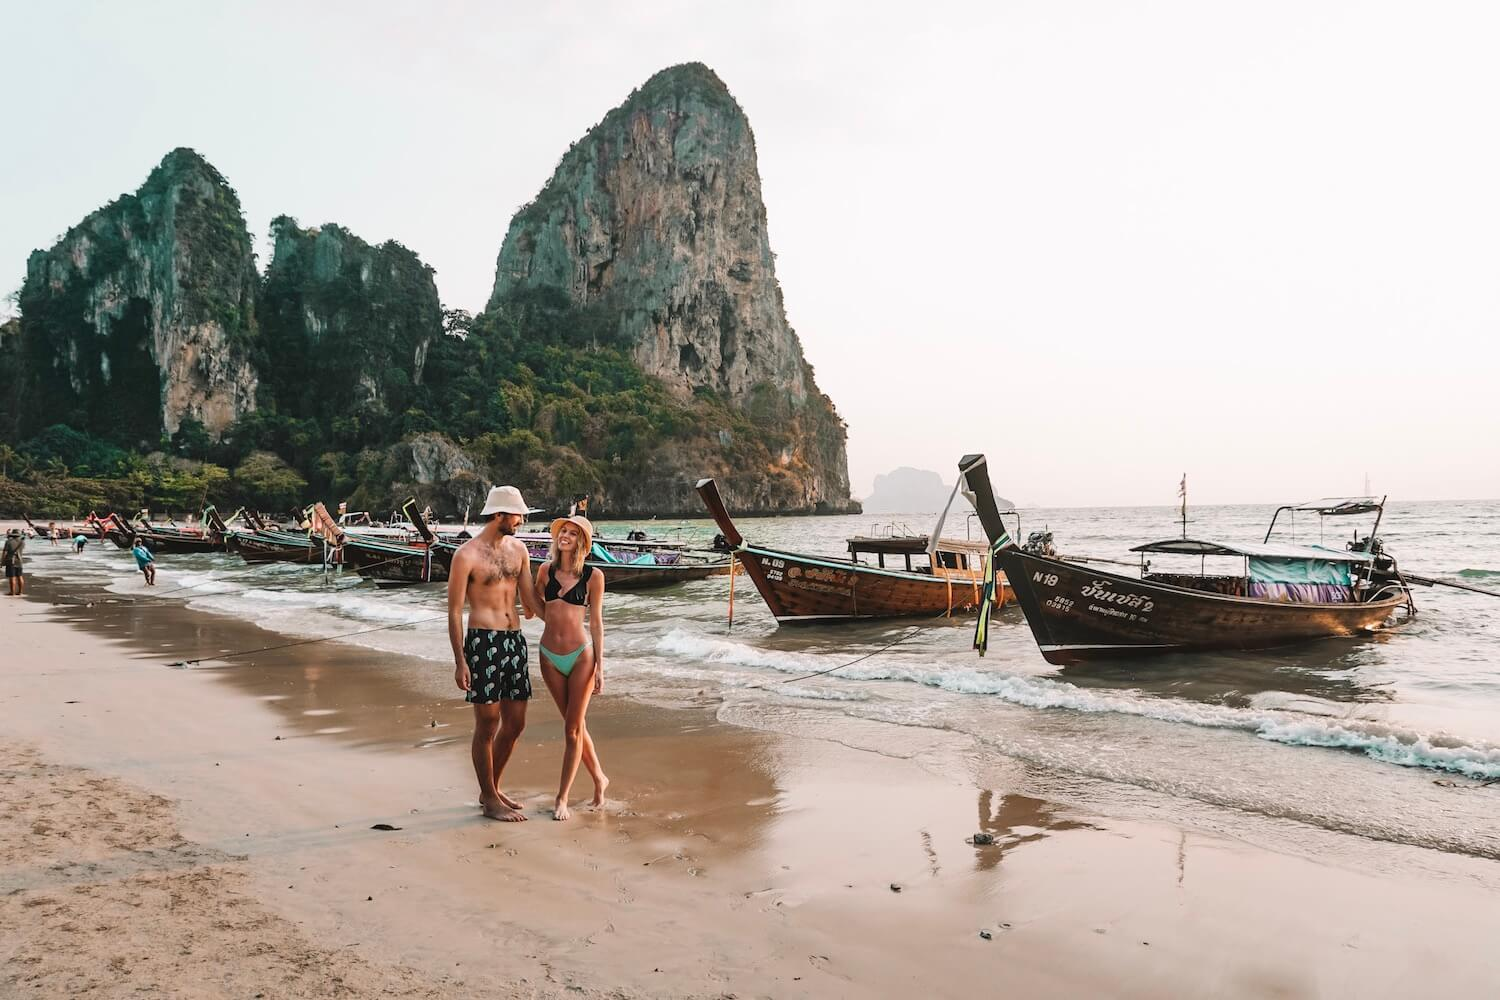 Lisa & Coleman of Lietco - Vanlife and Travel — We Moved Abroad